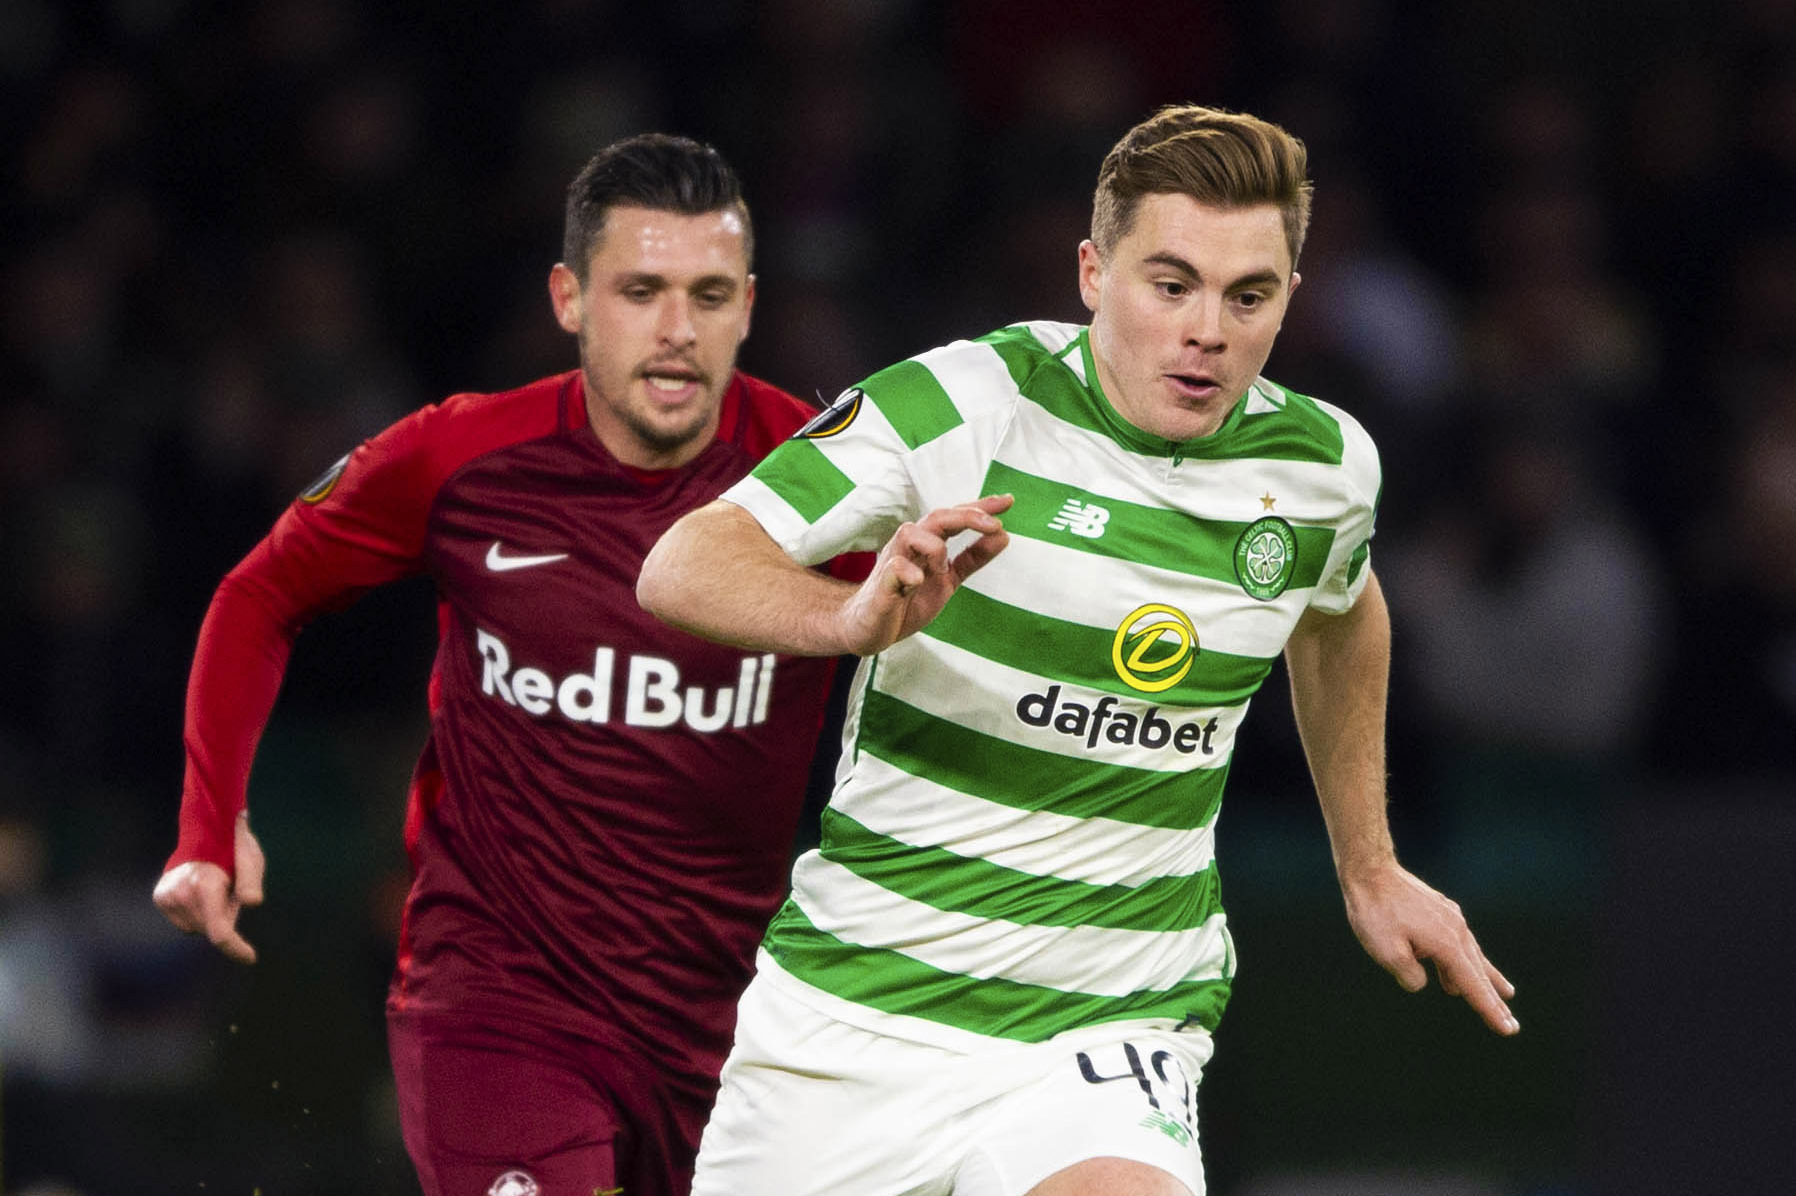 James Forrest would become Celtic's most senior player if Scott Brown leaves - a title he doesn't want just yet